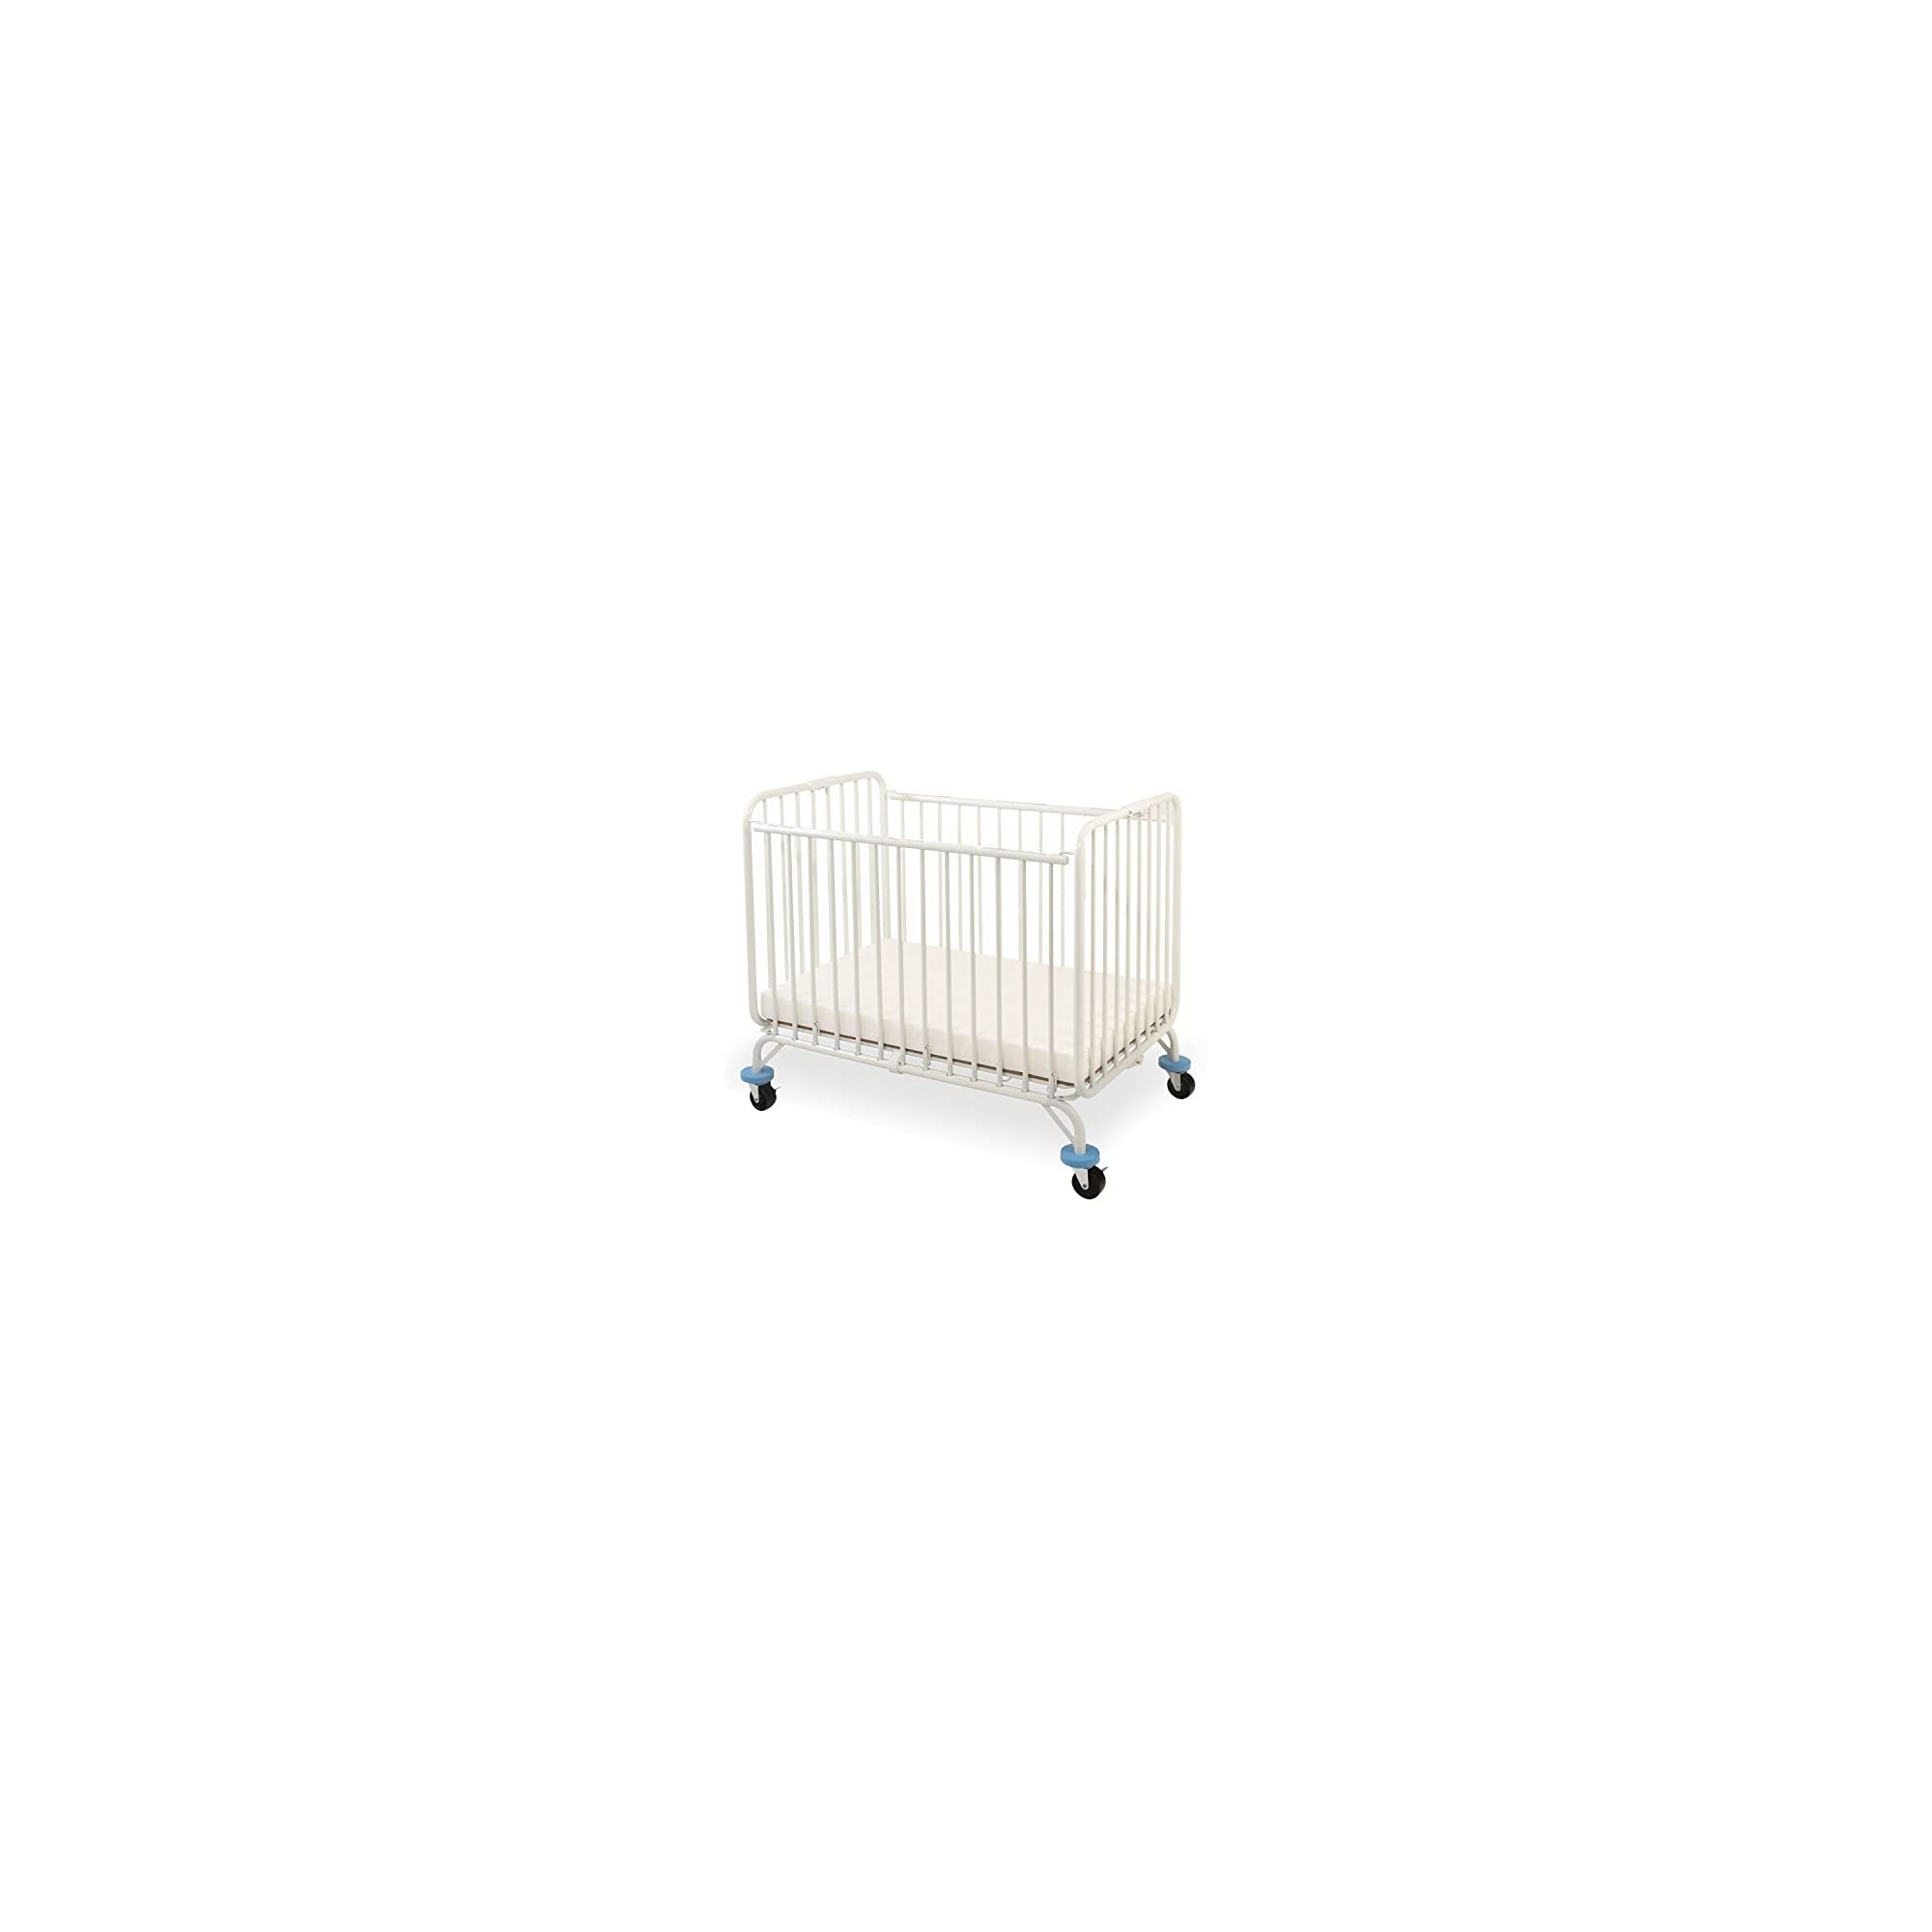 L.A. Baby Deluxe Holiday Mini/Portable Folding Metal Crib, White